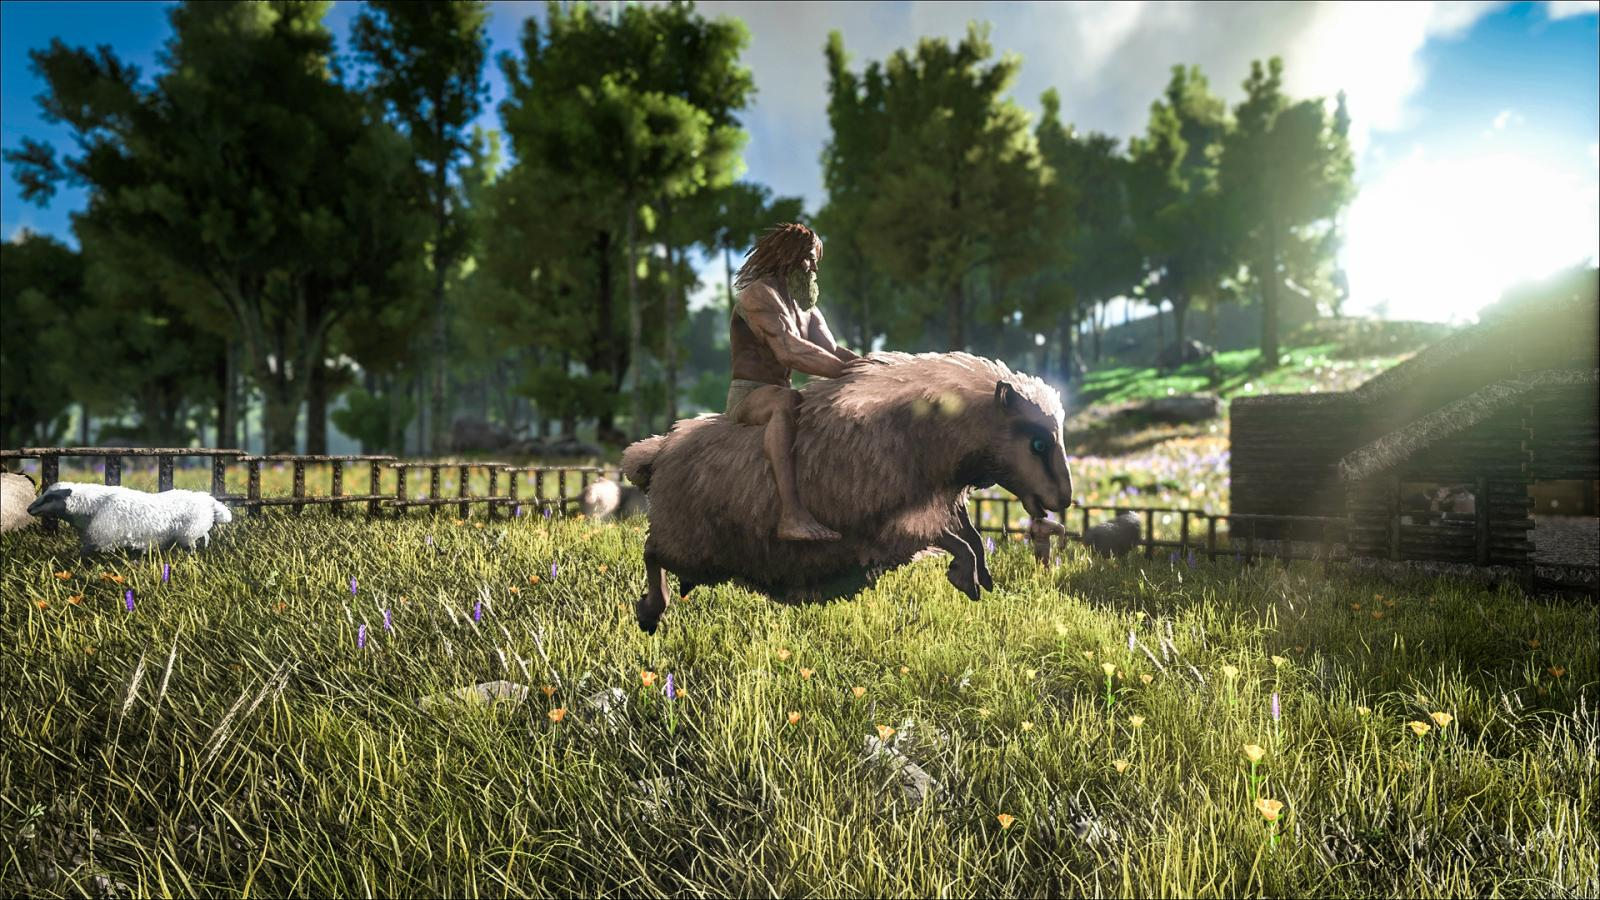 Ark Survival Evolved V254 Taming Guide How To Tame New Dinos Like Purlovia Baryonyx Player One Here are the locations for that. ark survival evolved v254 taming